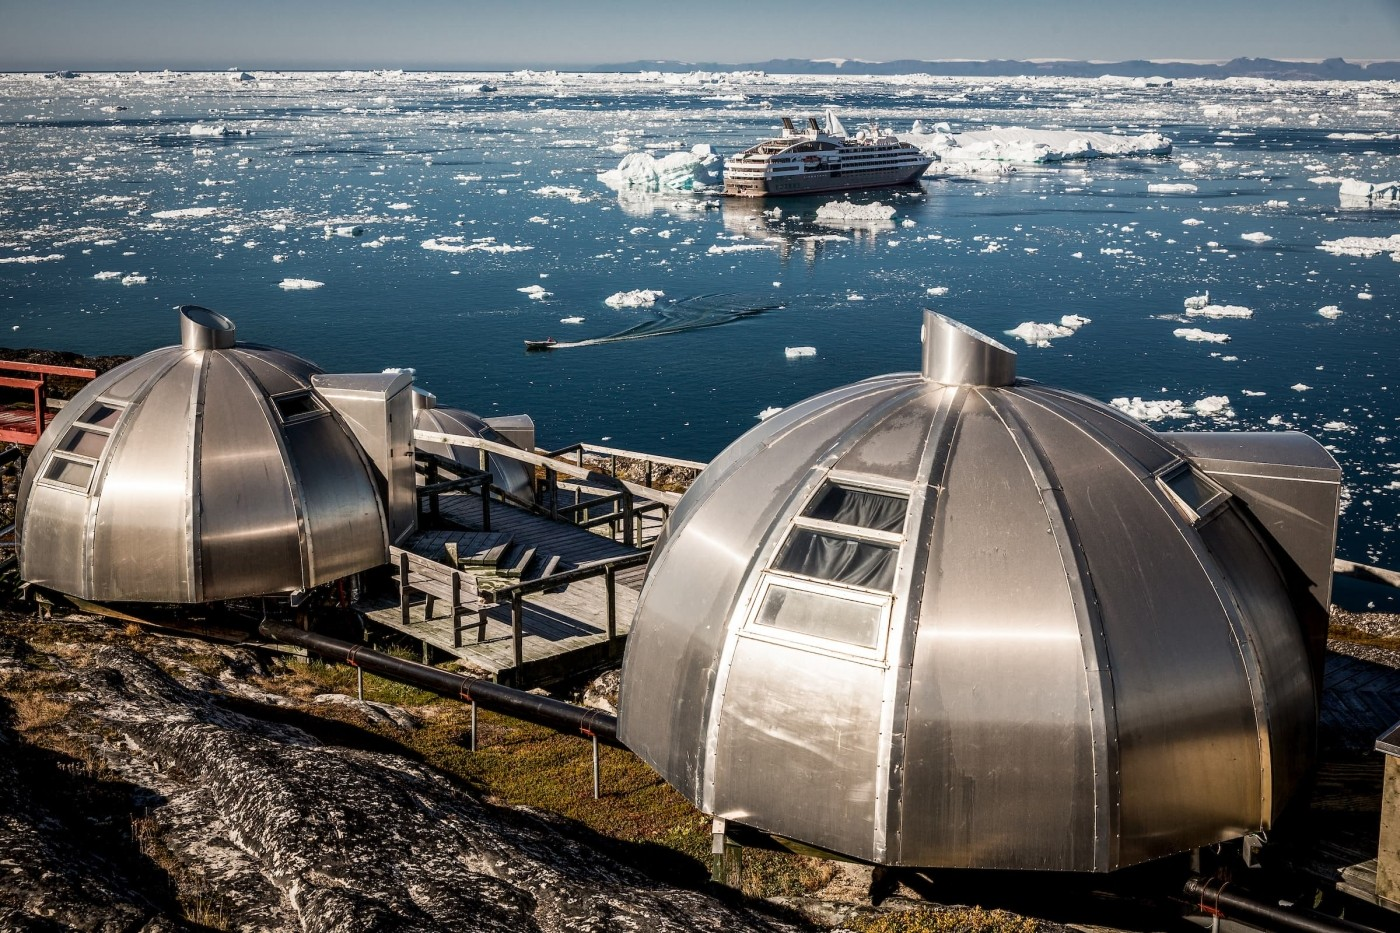 Ponant Cruises' L'Austral in front of the Hotel Arctic igloos in Ilulissat in Greenland. By Mads Pihl